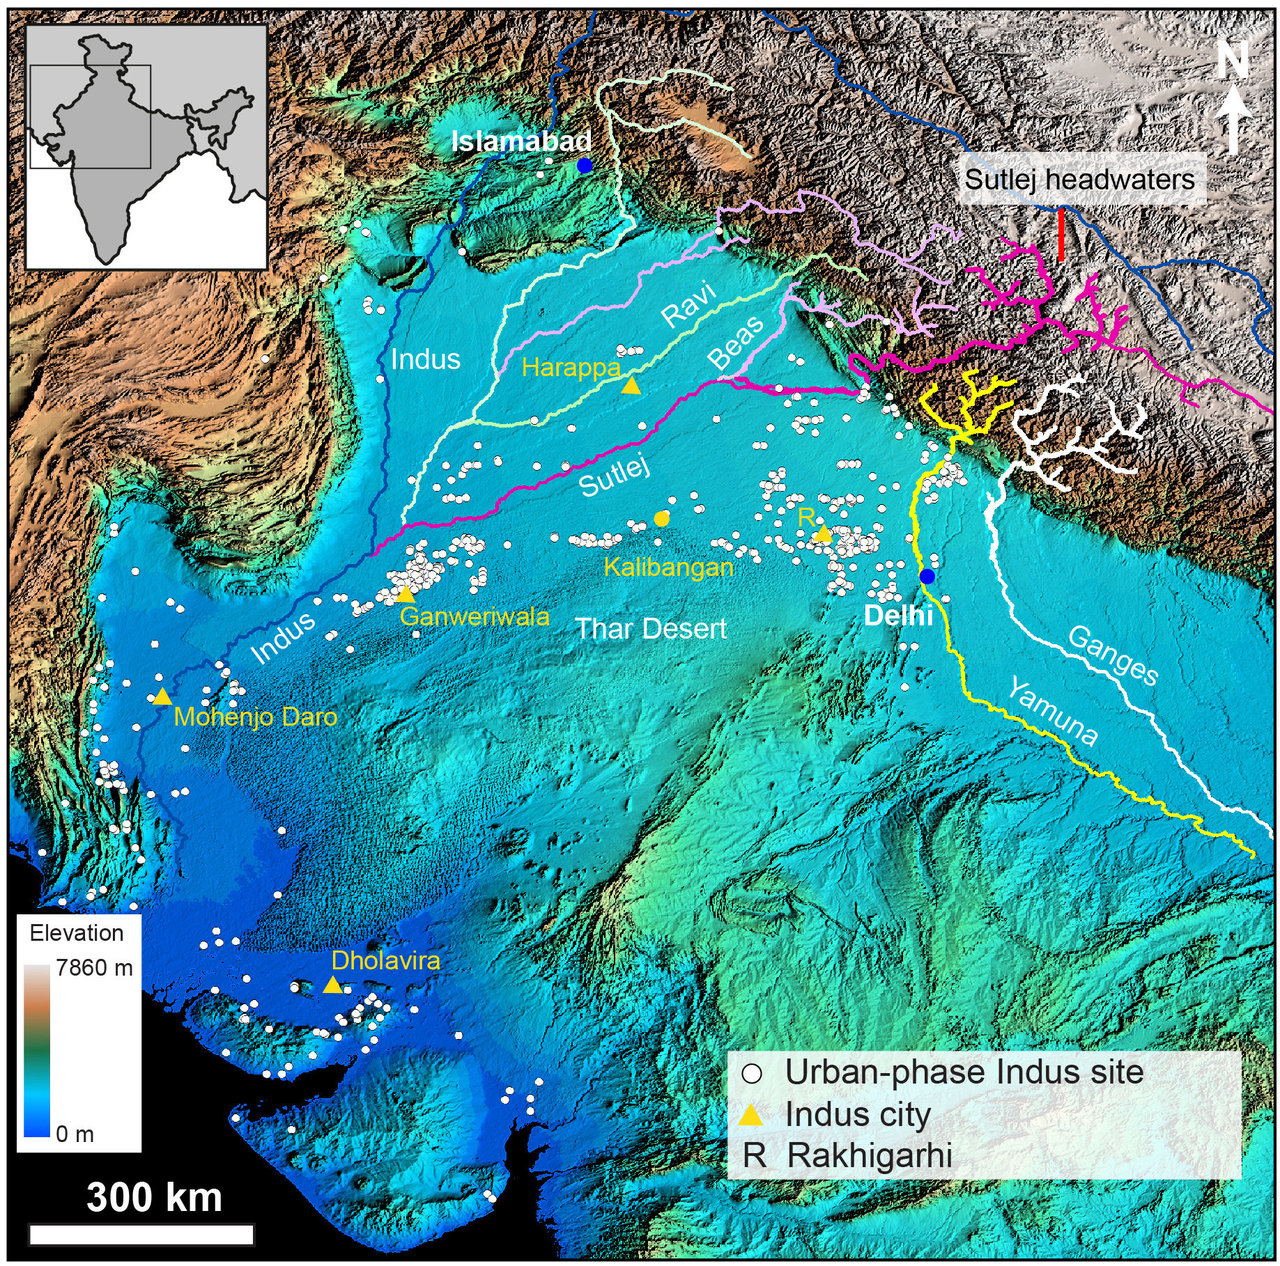 Scientists show how Himalayan rivers influenced ancient ... on map of ganges river, map of nineveh, map of india, map of tepe sialk, map of rome, map of mohenjo-daro, map of nabta playa, map of silk road, map of gupta empire, map of muslim rule, map of hindu kush, map of sparta, map of deccan plateau, map of western ghats, map of thebes, map of mesopotamia, map of kahror pacca, map of banpo, map of cahokia mounds, map of muridke,